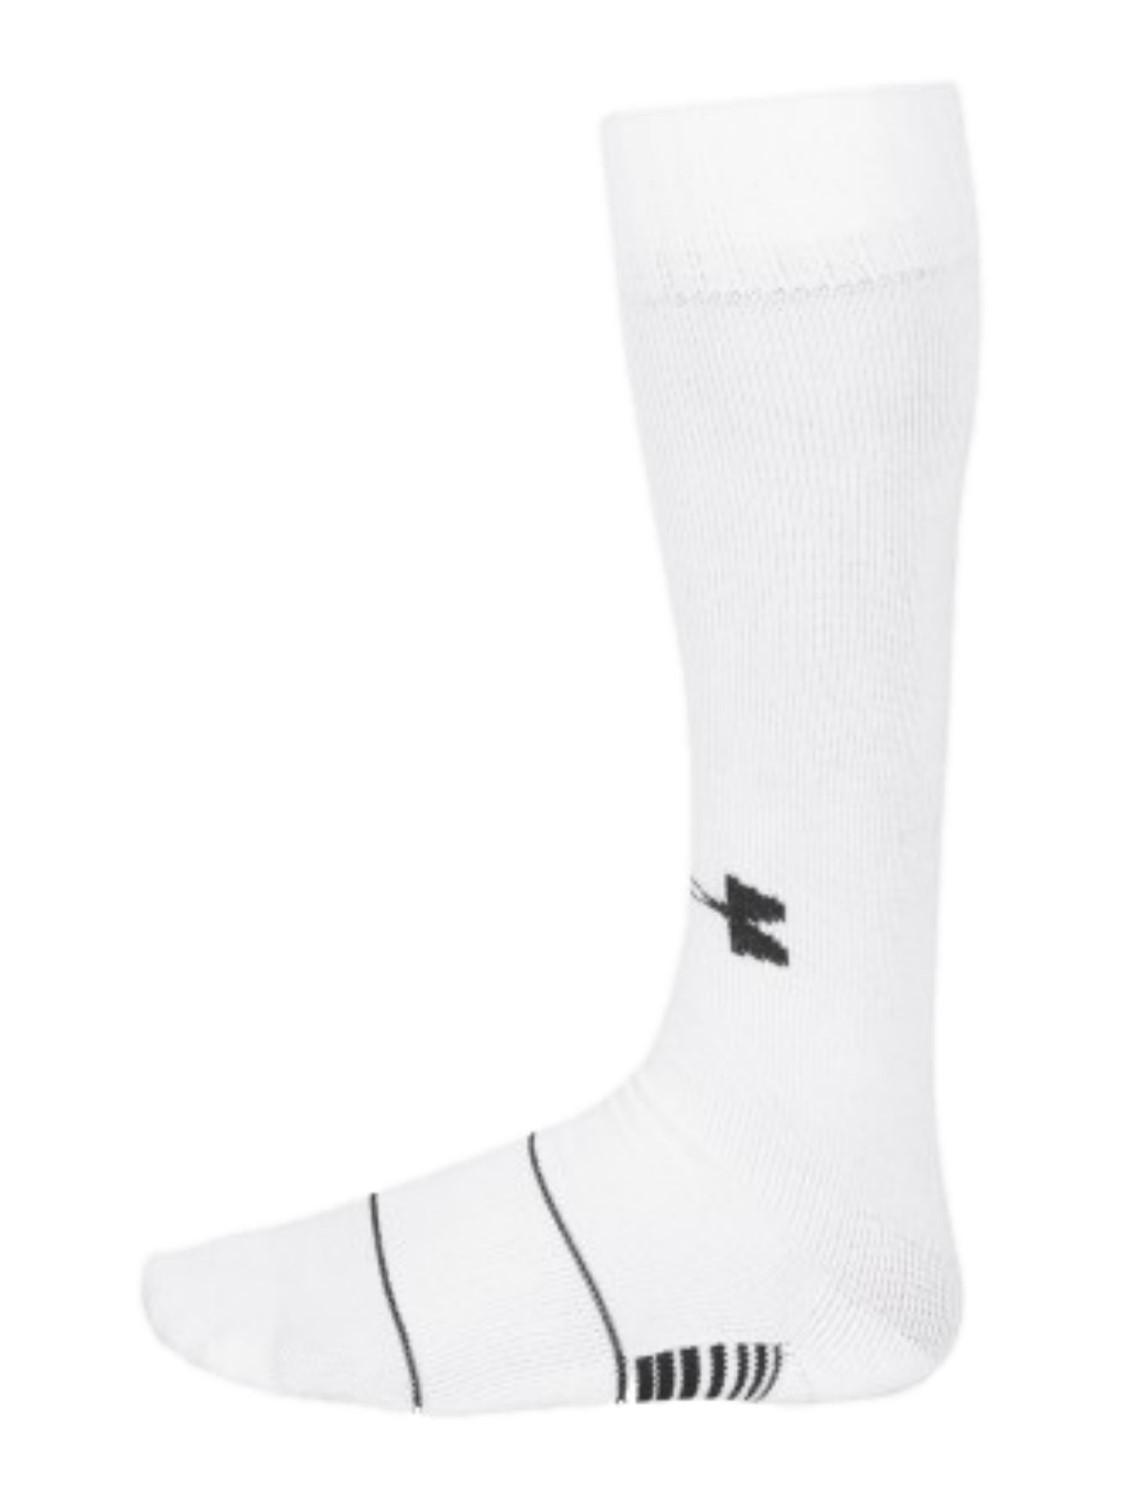 1125x1500 Under Armour Heatgear Performance Team Over The Calf White Socks